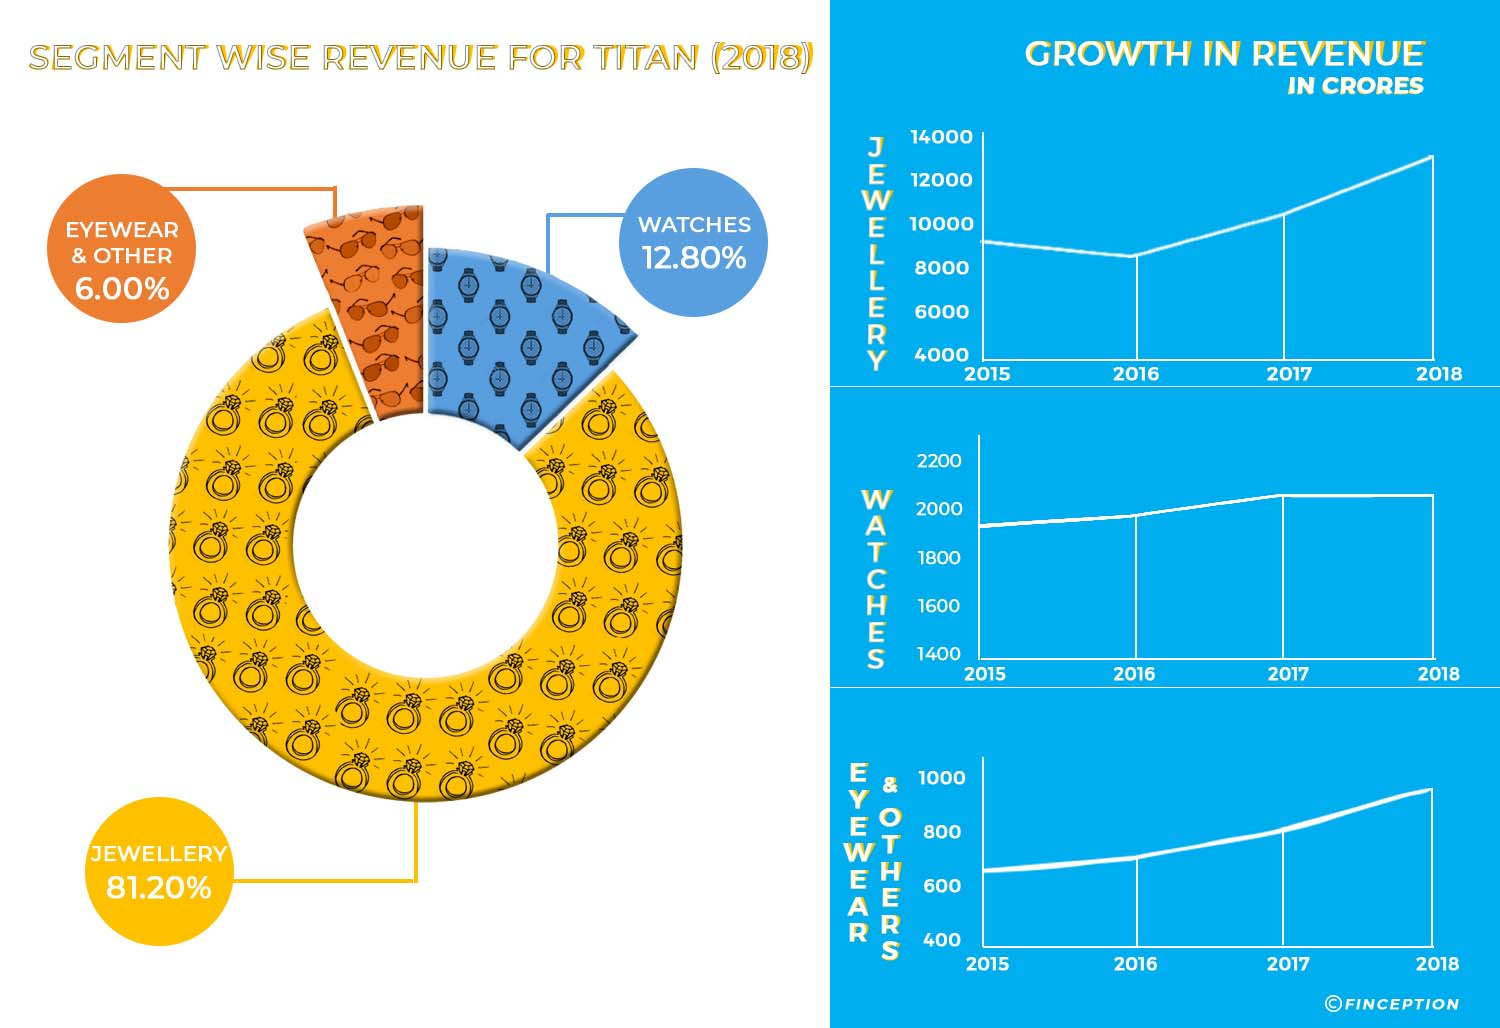 Segment wise revenue for Titan